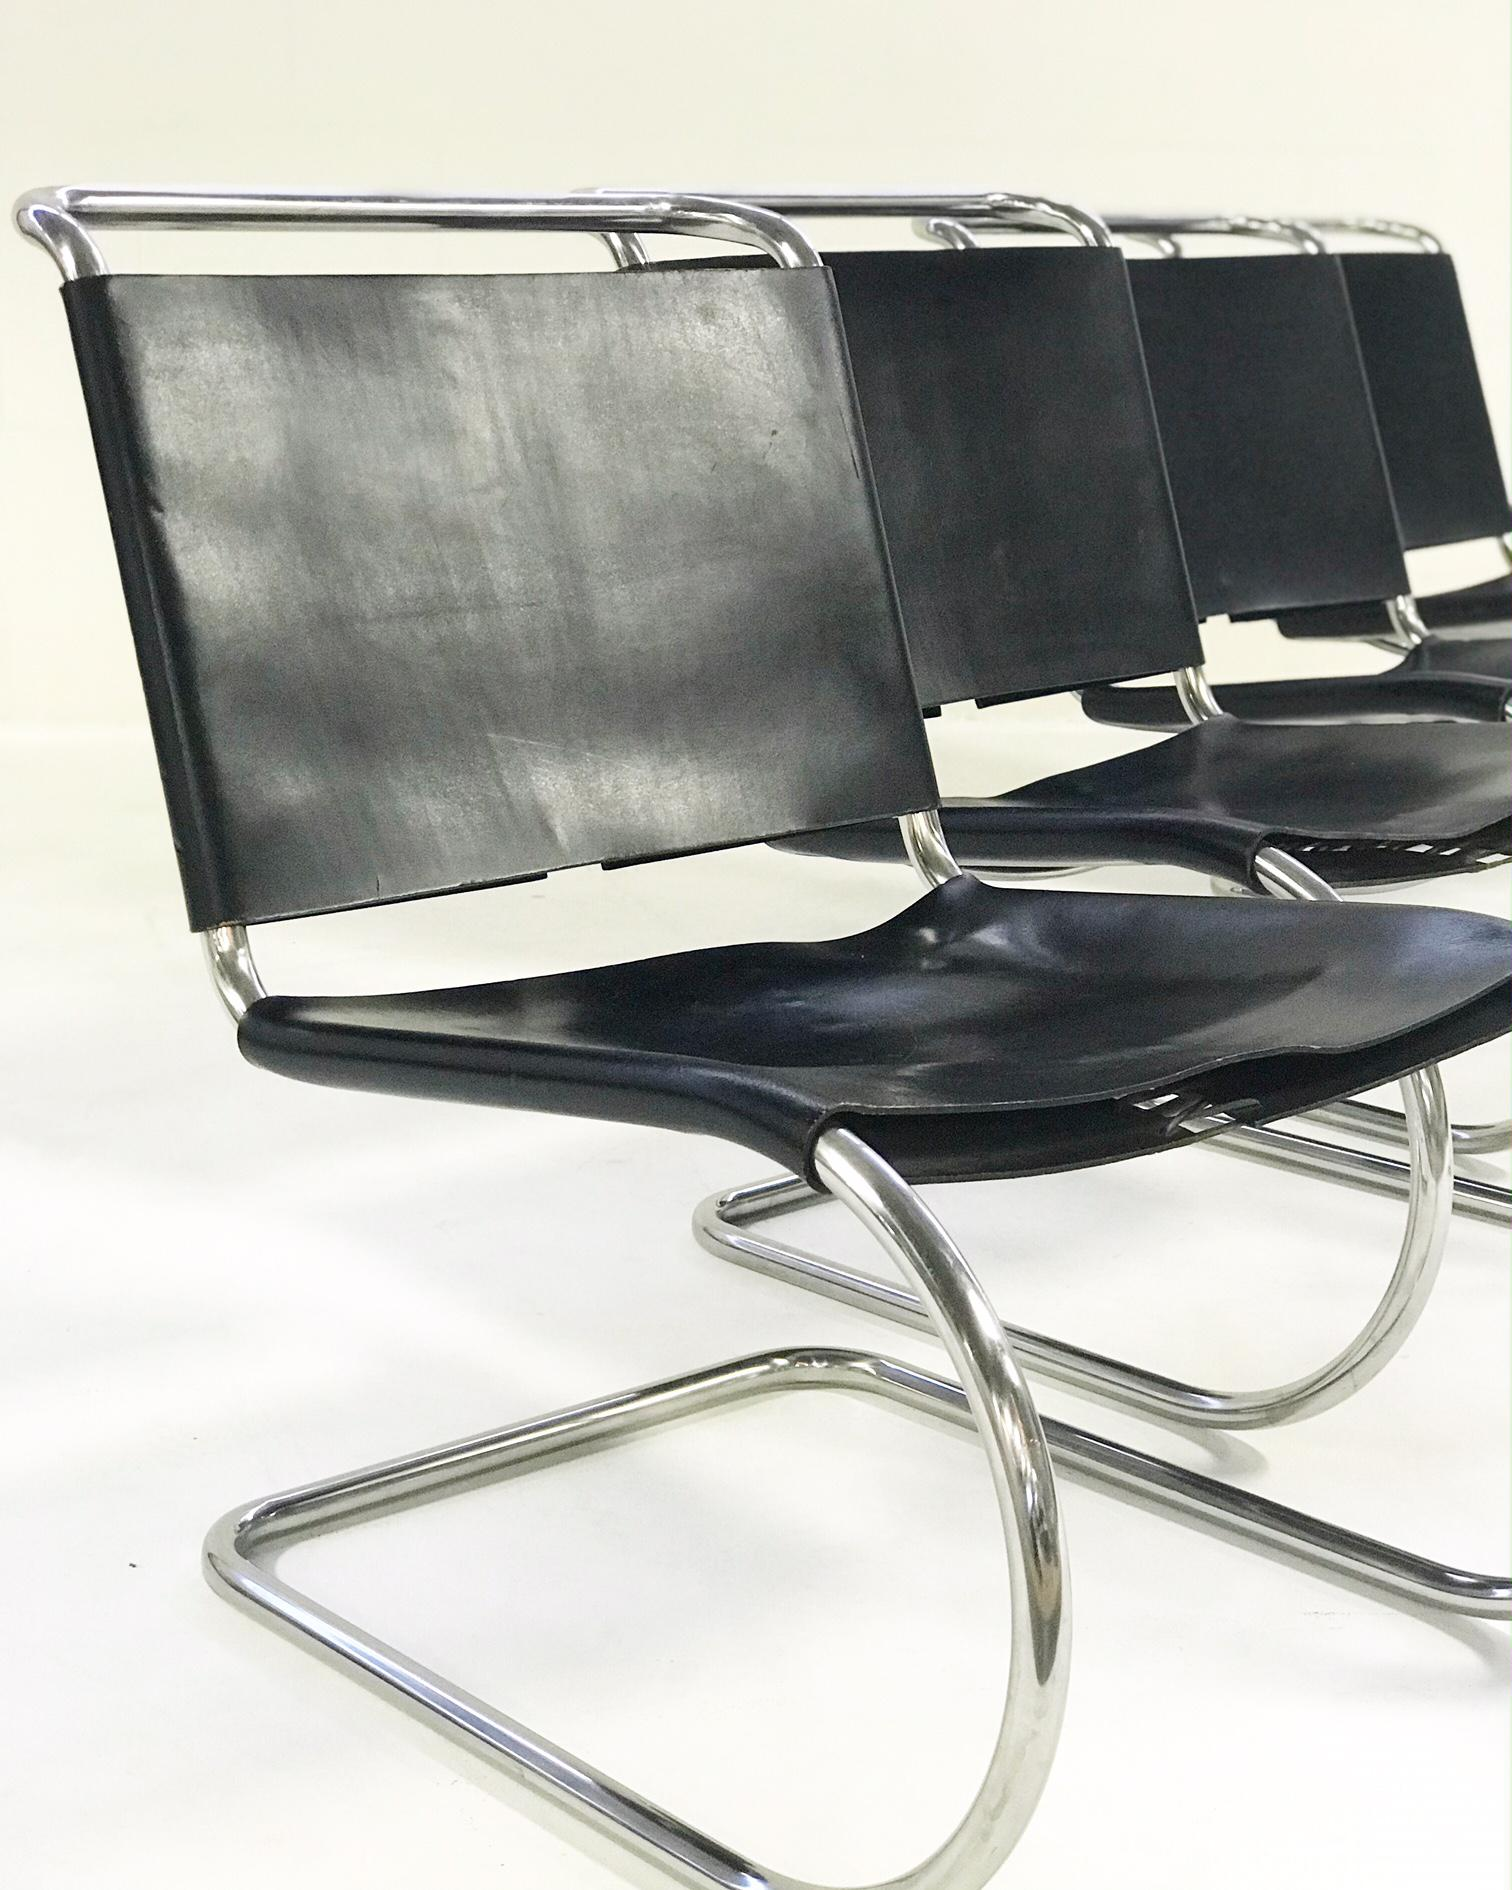 Ludwig Mies Van Der Rohe For Knoll MR Chairs With Brazilian Sheepskins    Set Of 4